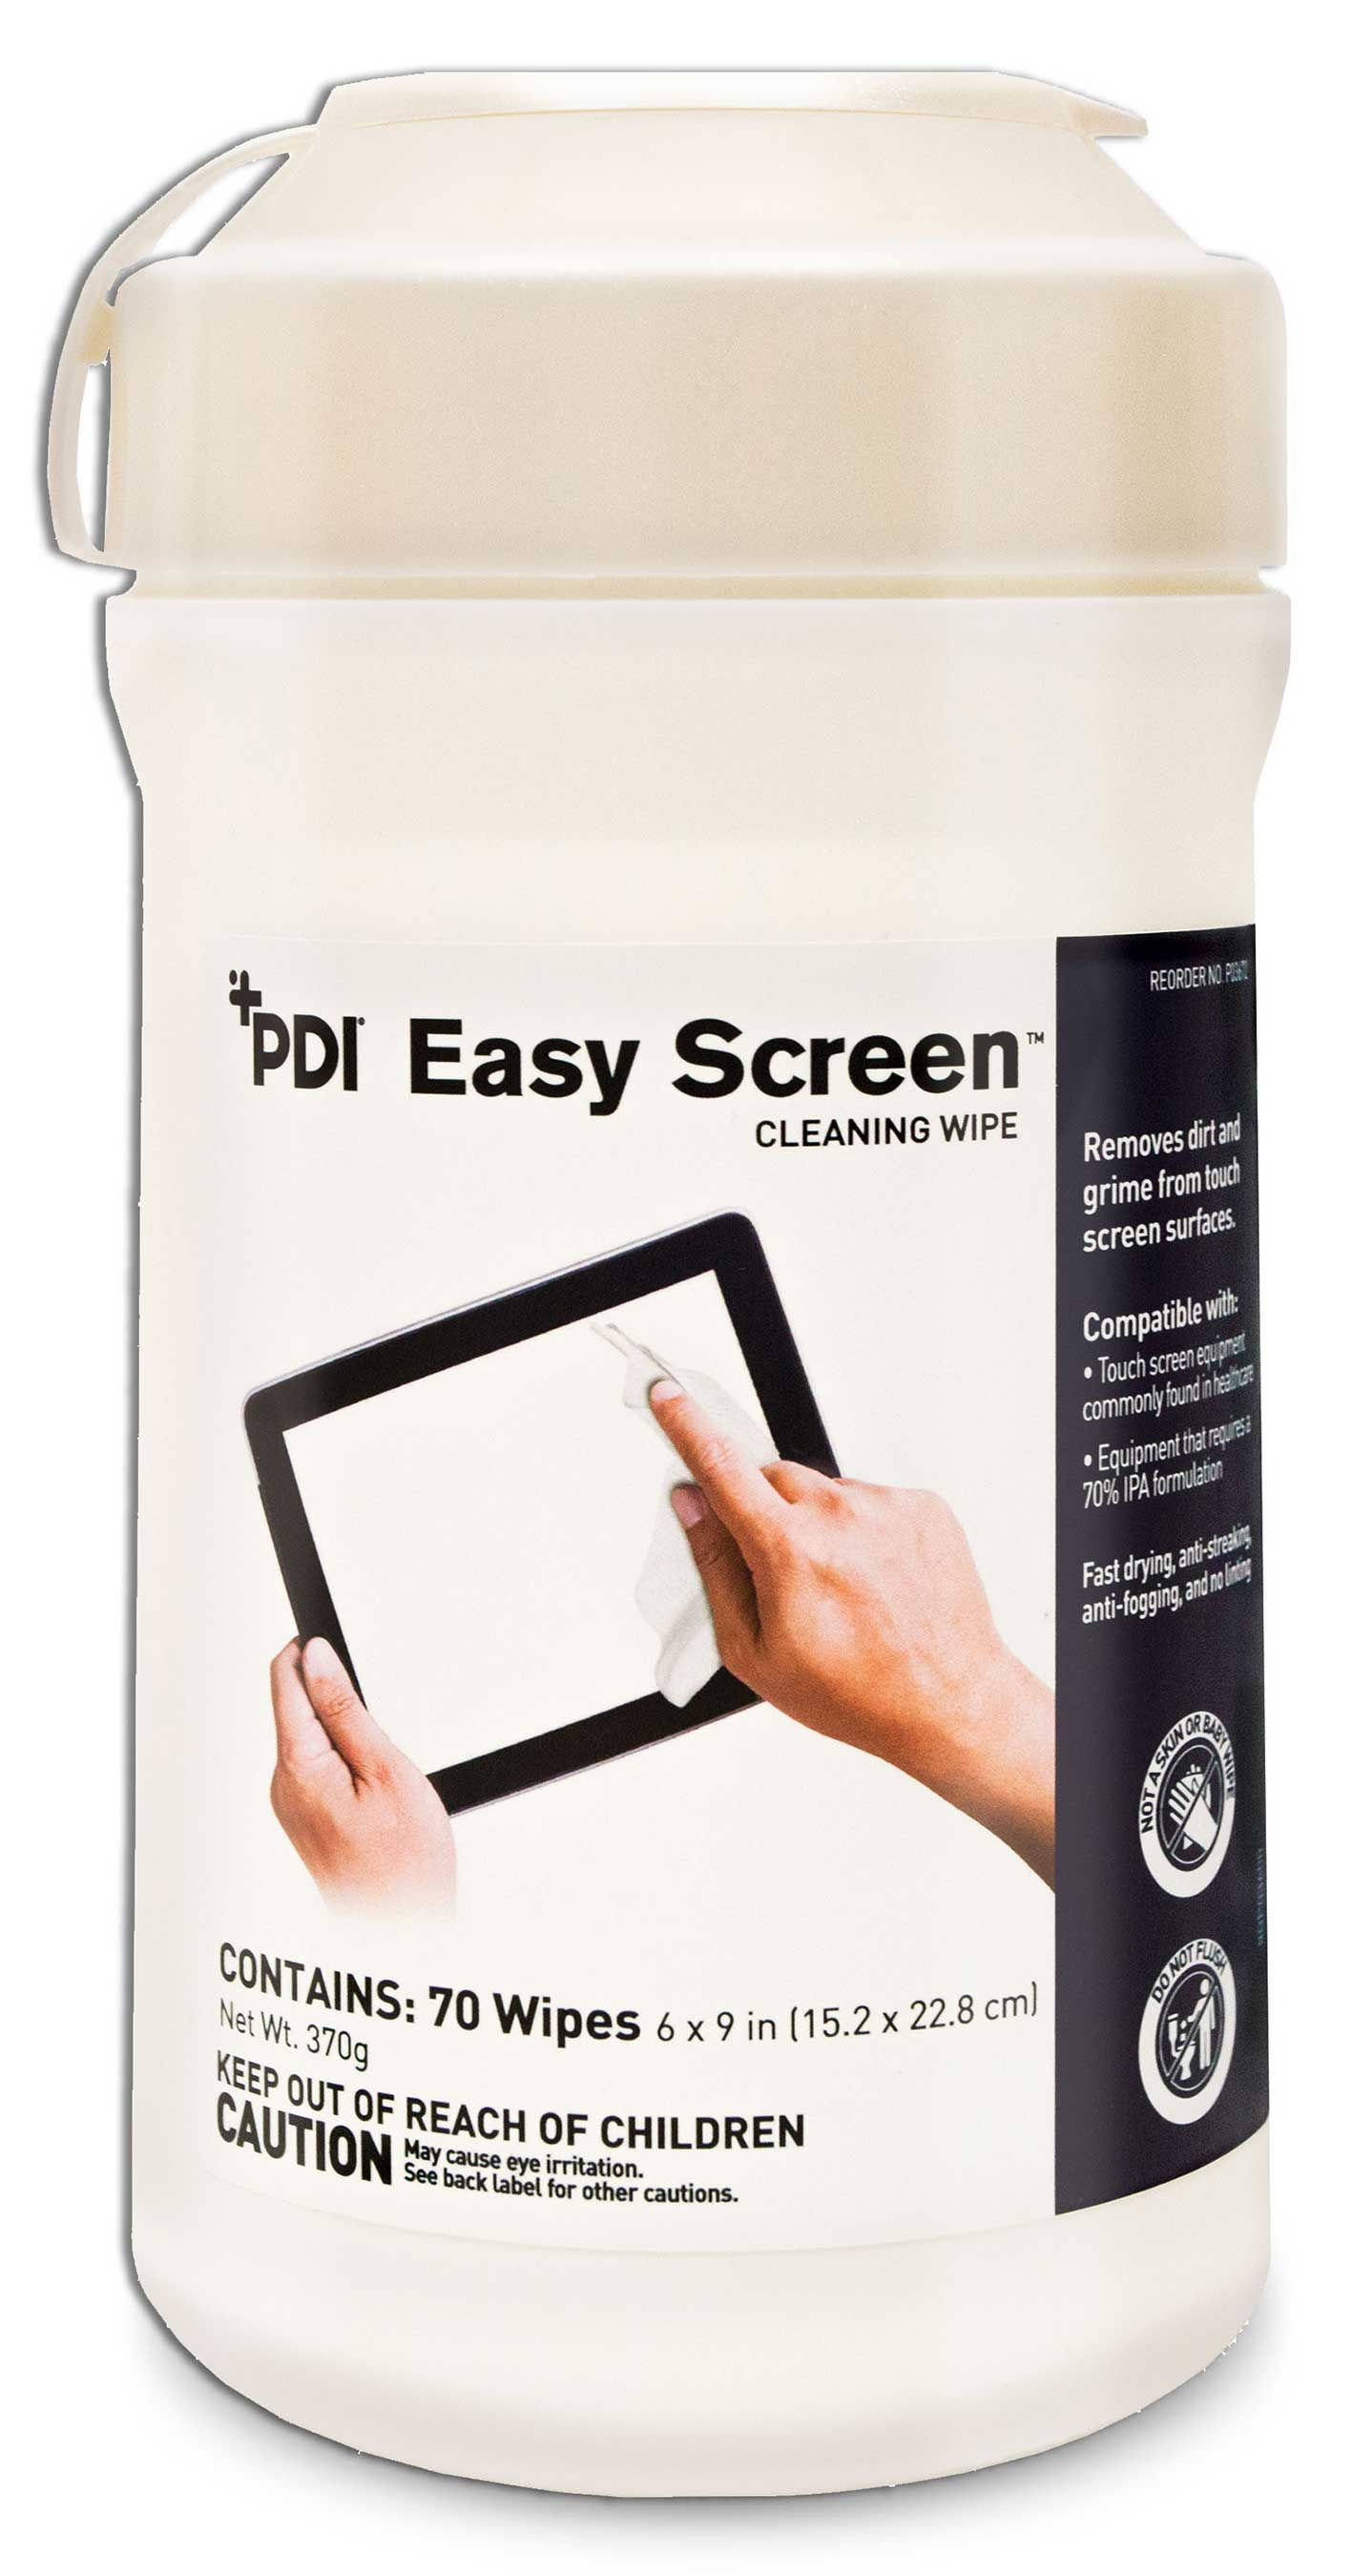 PDI Healthcare Announcing Launch of EASY SCREEN™ CLEANING WIPE